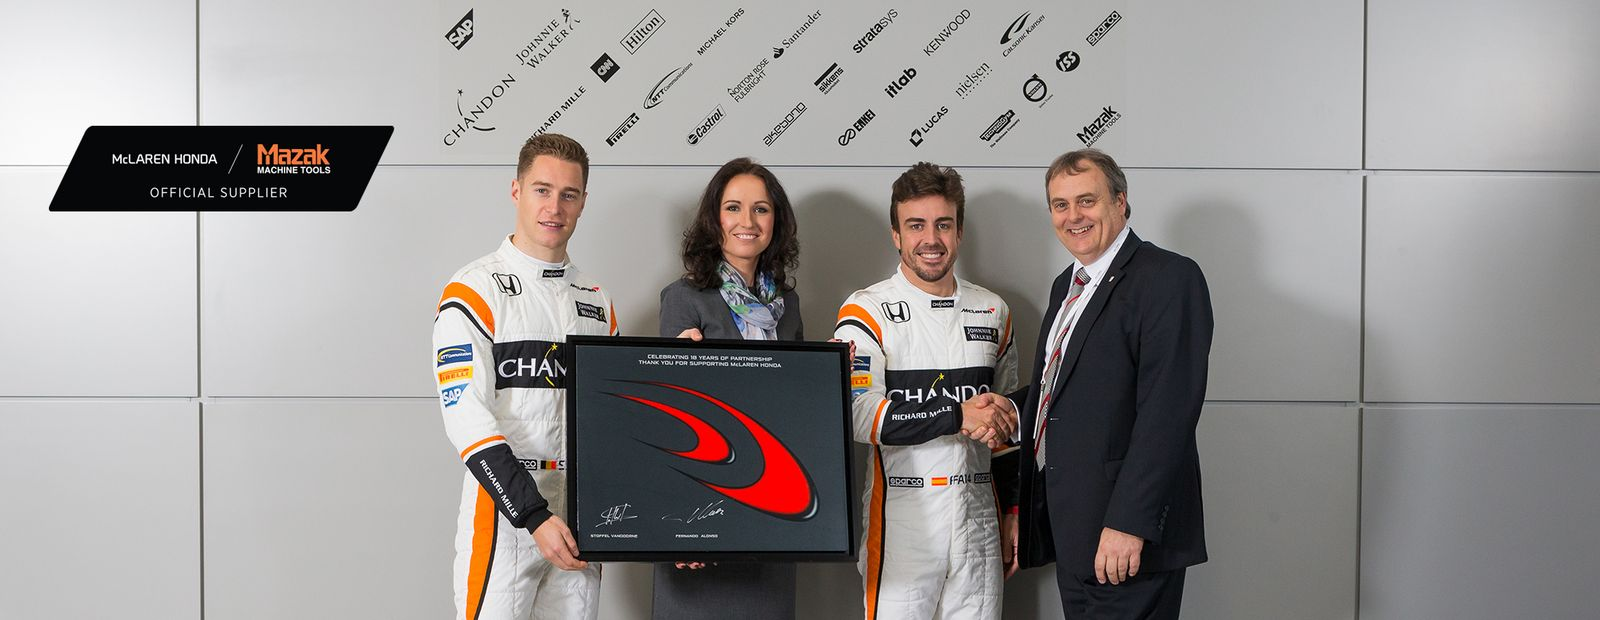 McLaren-Honda extends exclusive machine tool partnership with Mazak